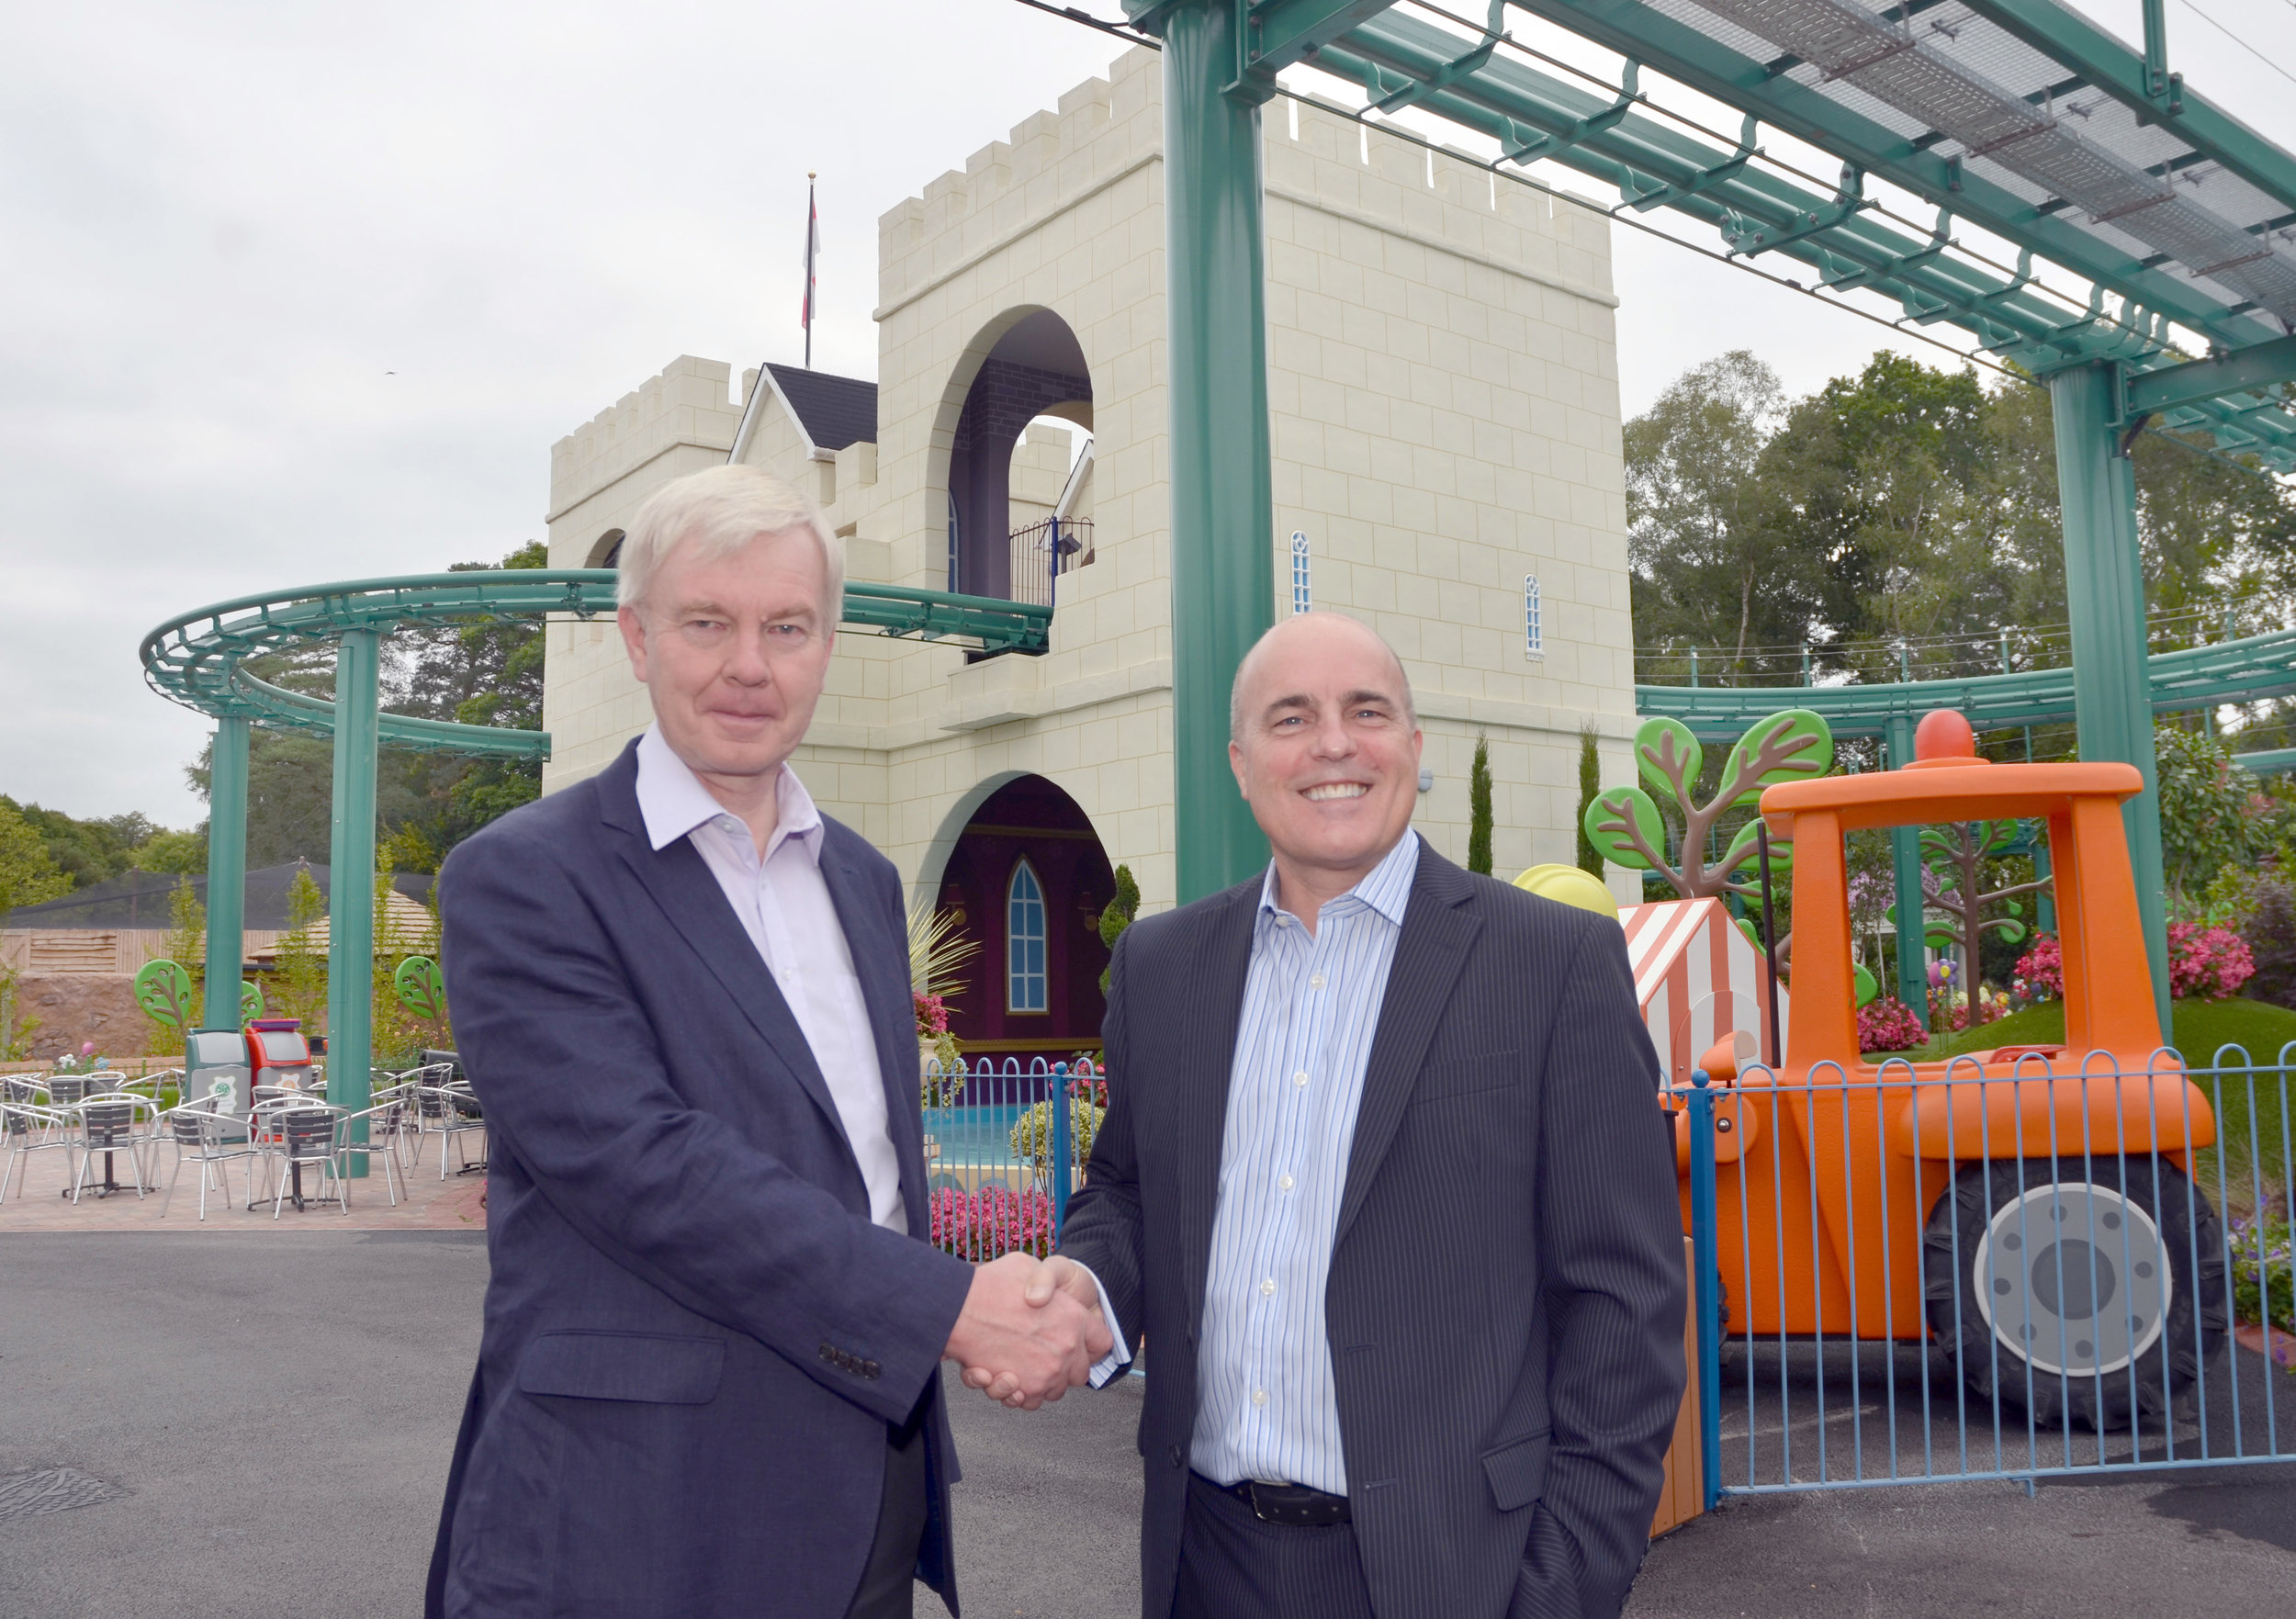 WFBA attended the Paultons Family Theme Park to view visitors enjoying latest attraction within Peppa Pig world.